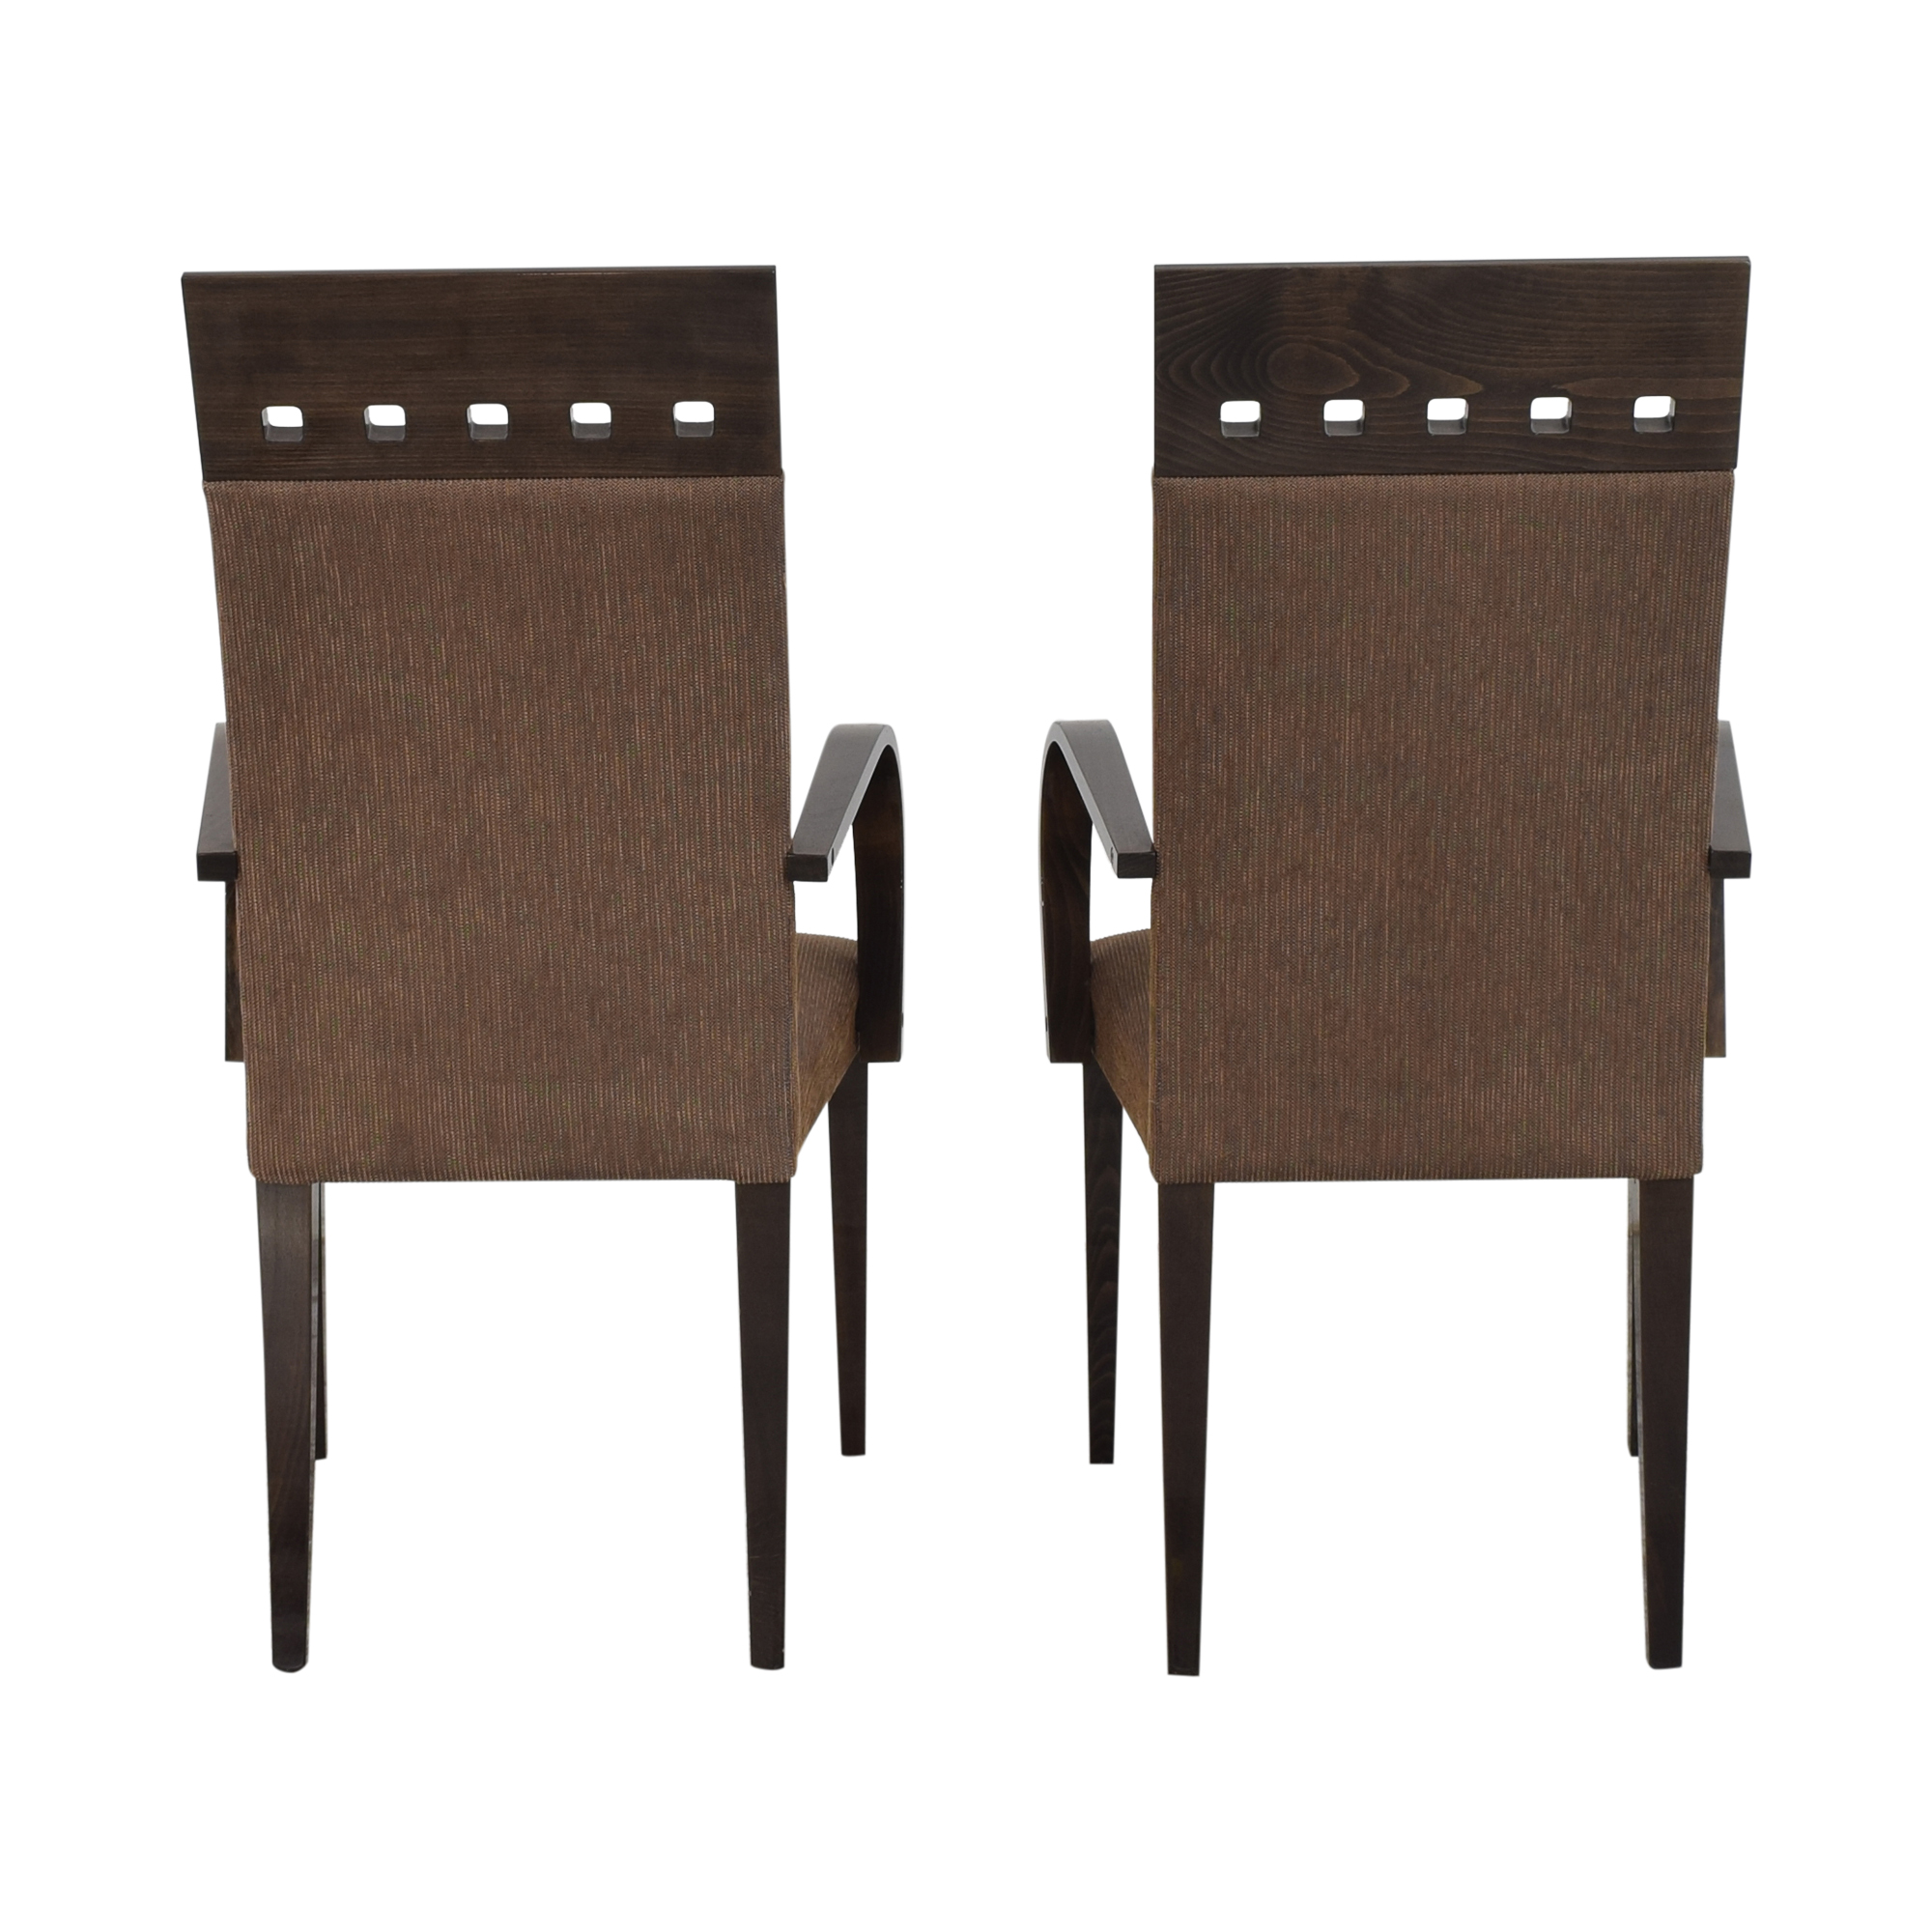 Pietro Costantini Pietro Costantini High Back Dining Arm Chairs Dining Chairs